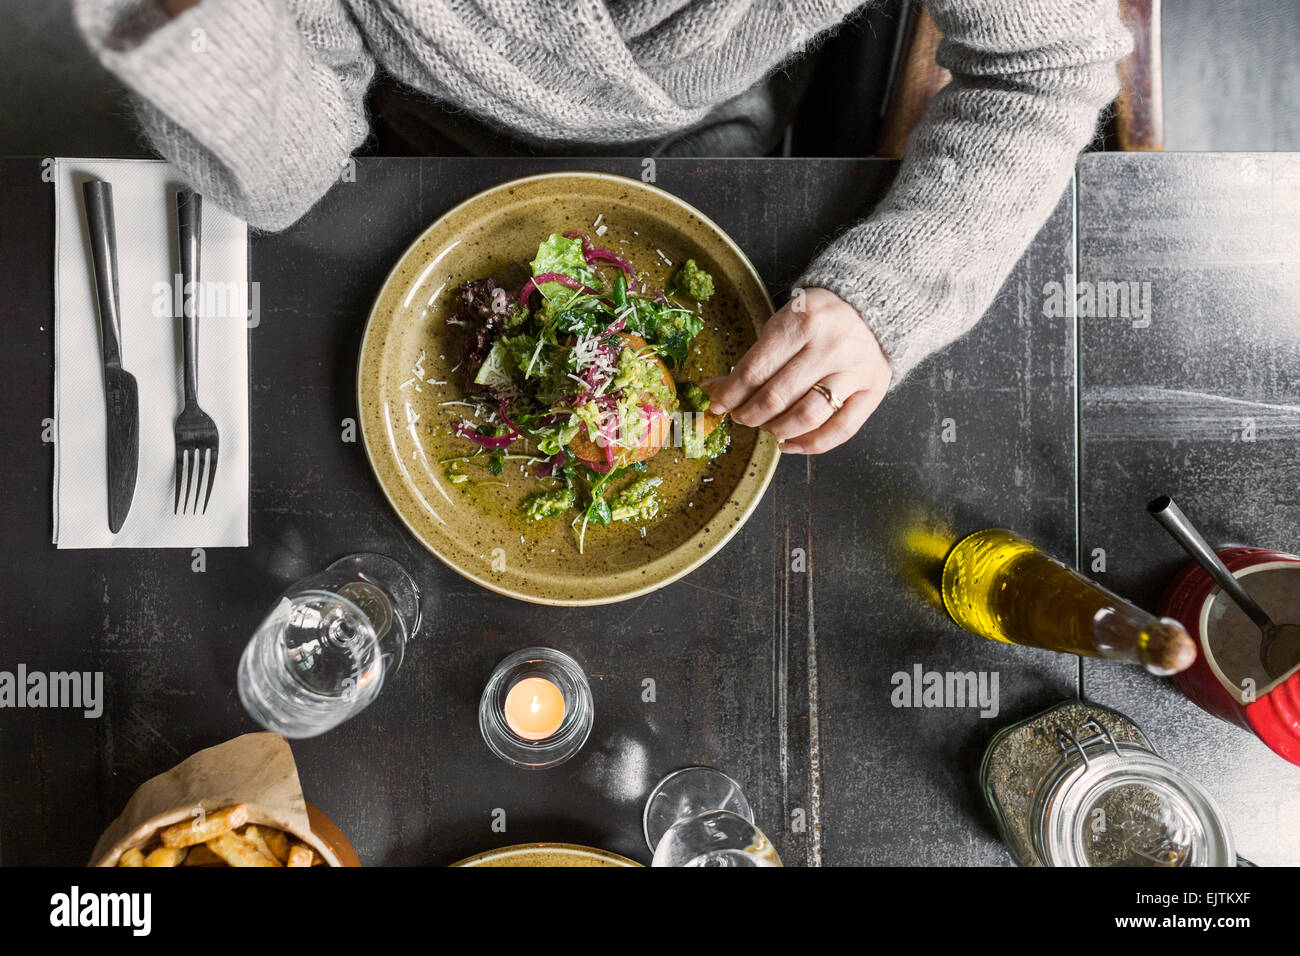 Cropped image of woman with food served on table - Stock Image